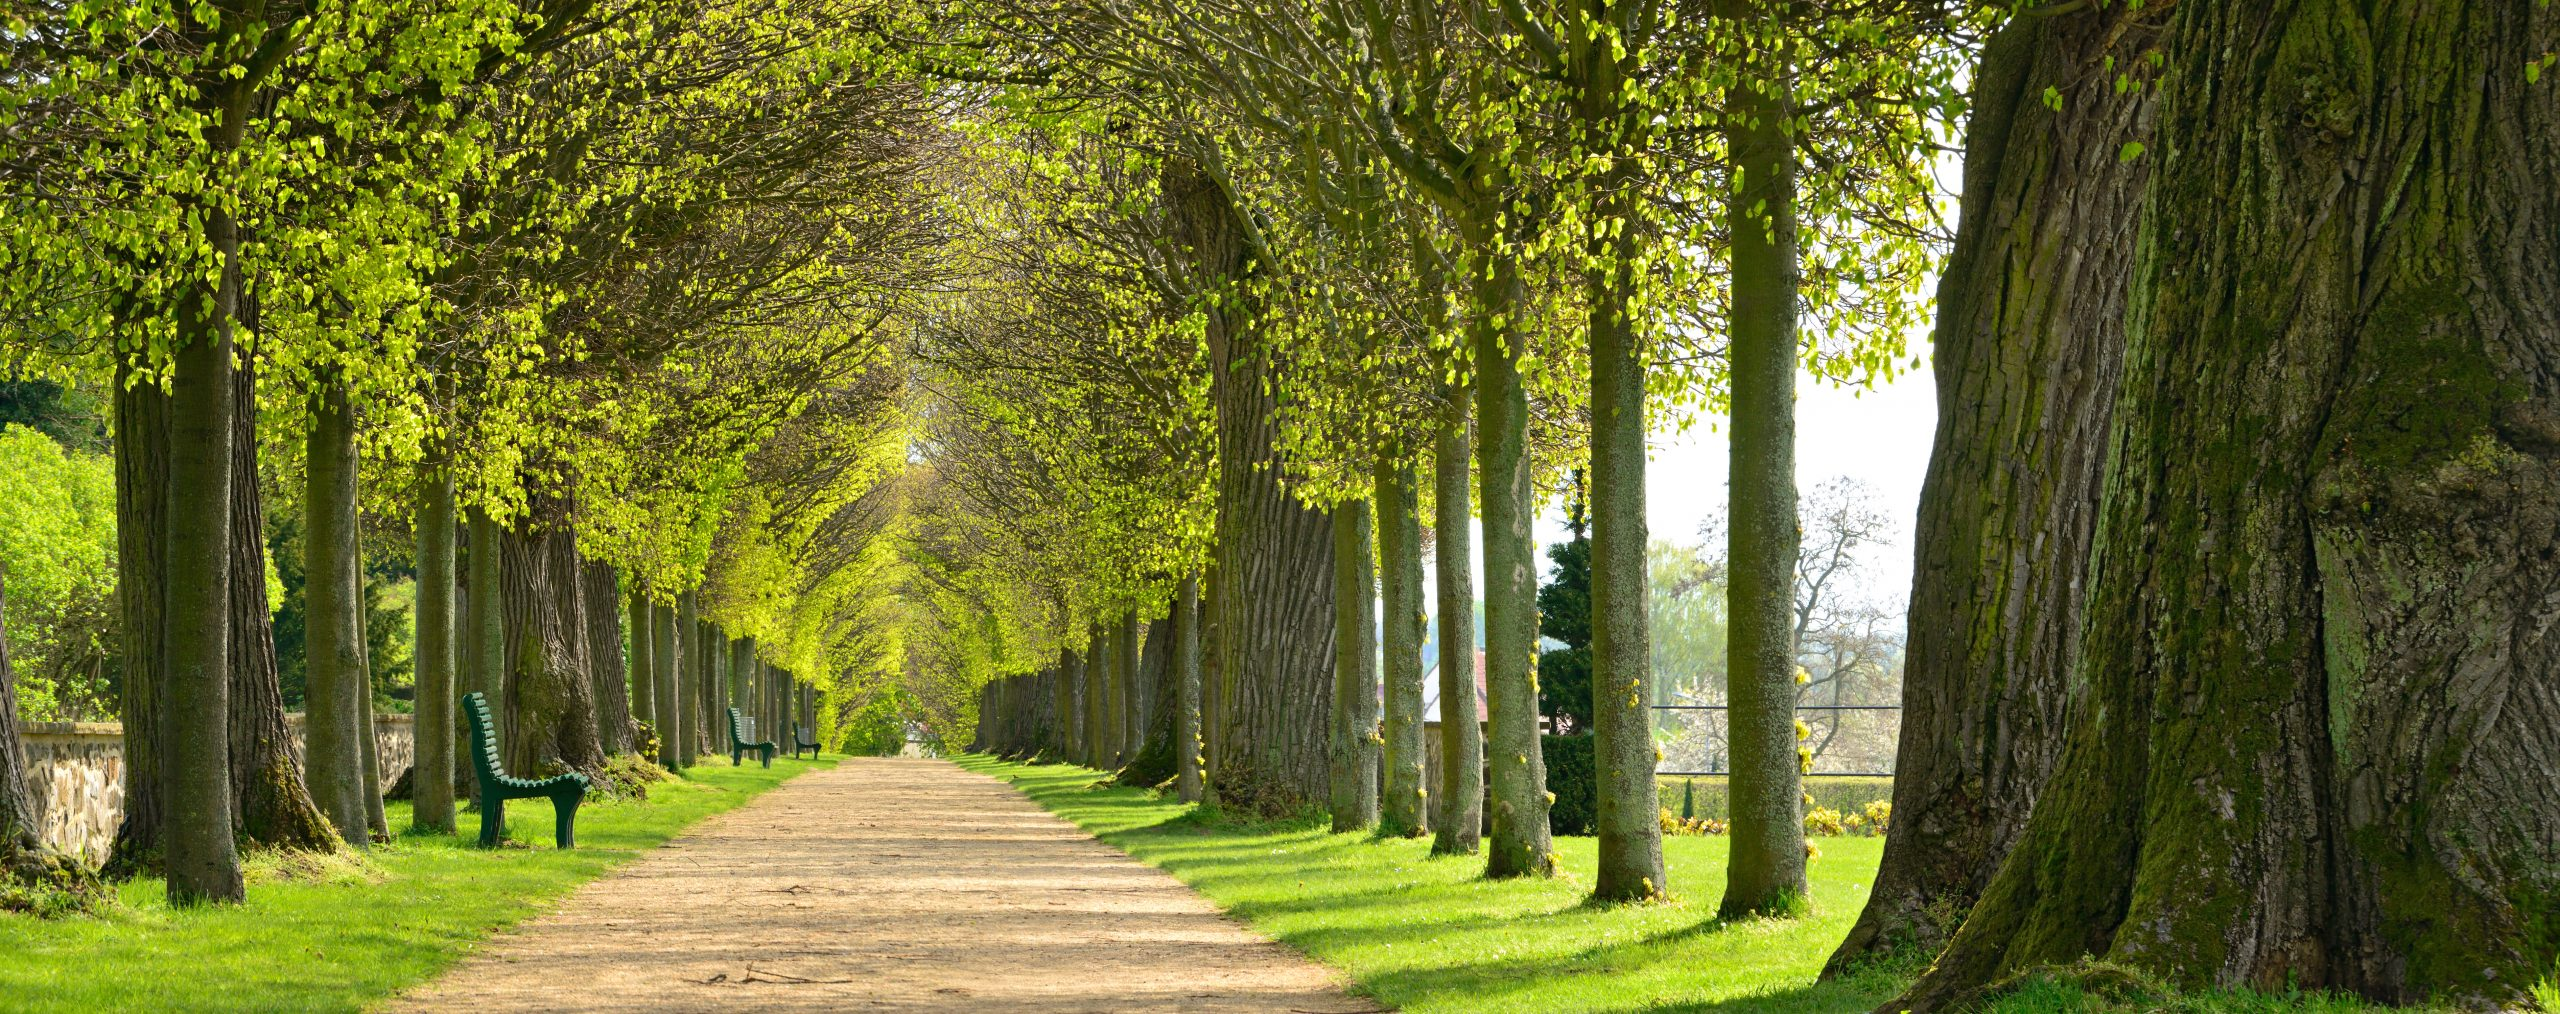 Avenue,Of,Linden,Trees,,Tree,Lined,Footpath,Through,Park,In